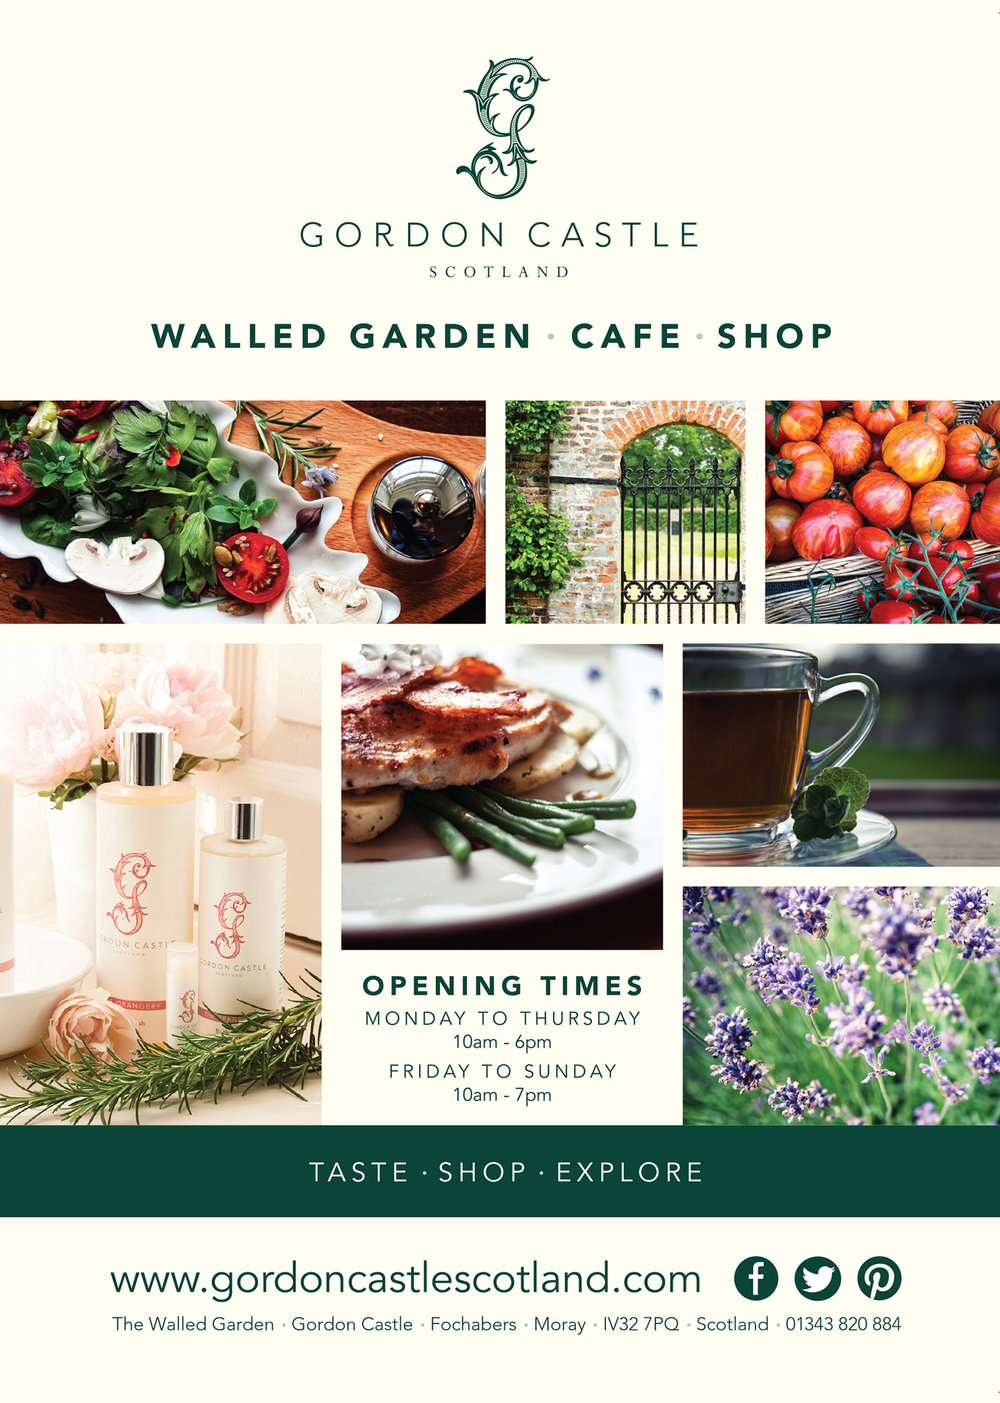 Giles Lawson Johnston, COO, The Walled Garden Trading Co Ltd: